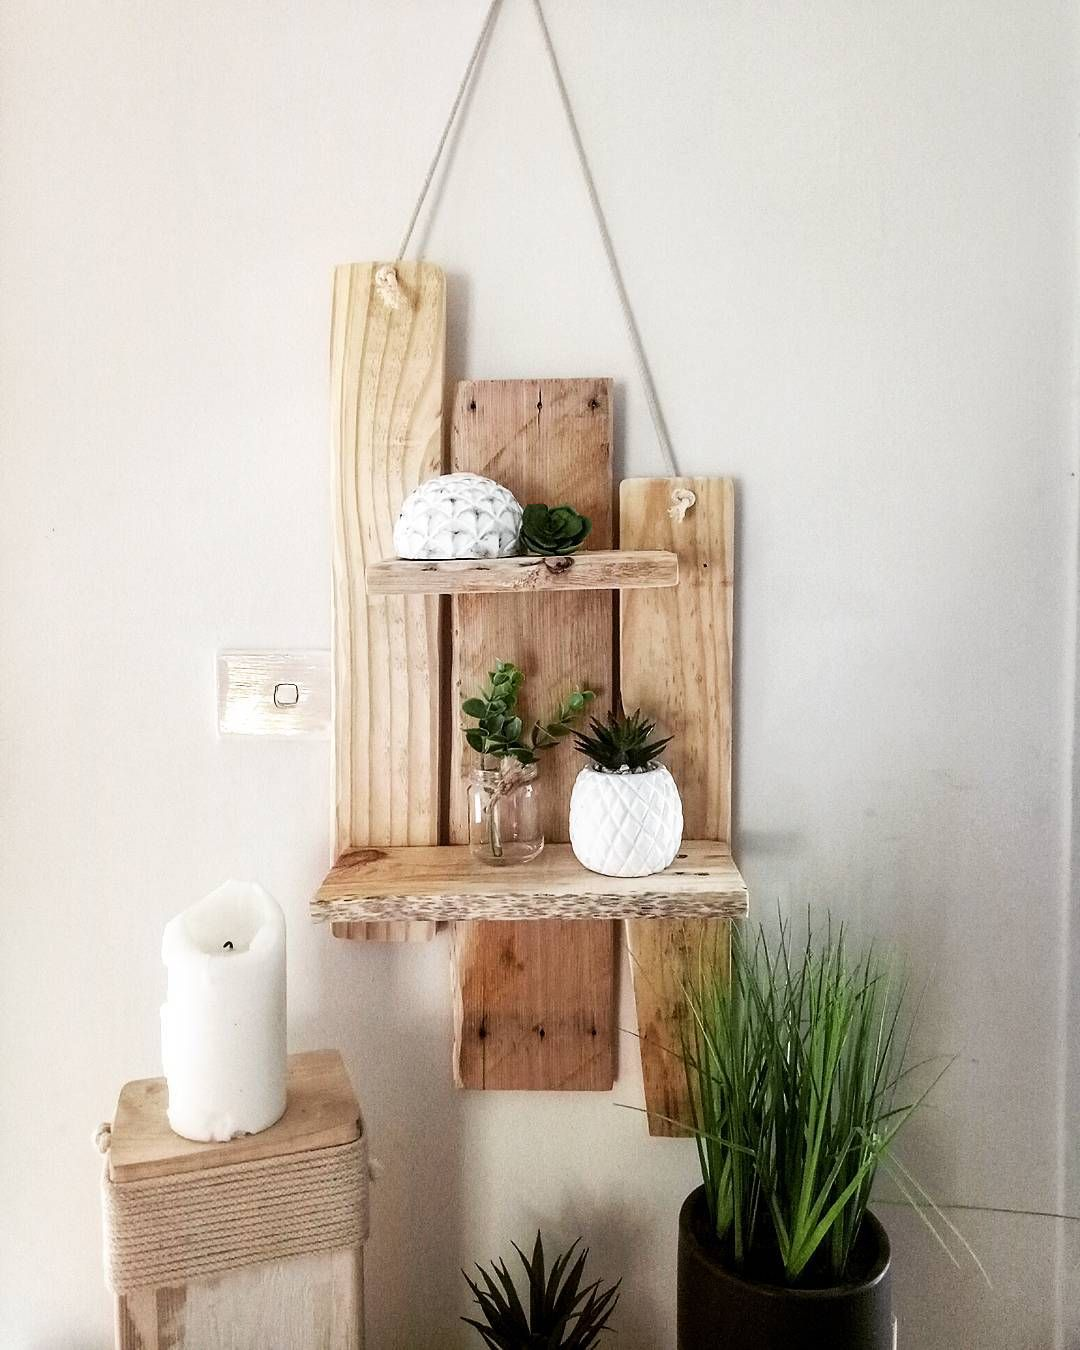 51+ Creative & Cheap Wooden Pallet Projects - 5 Min Ideas